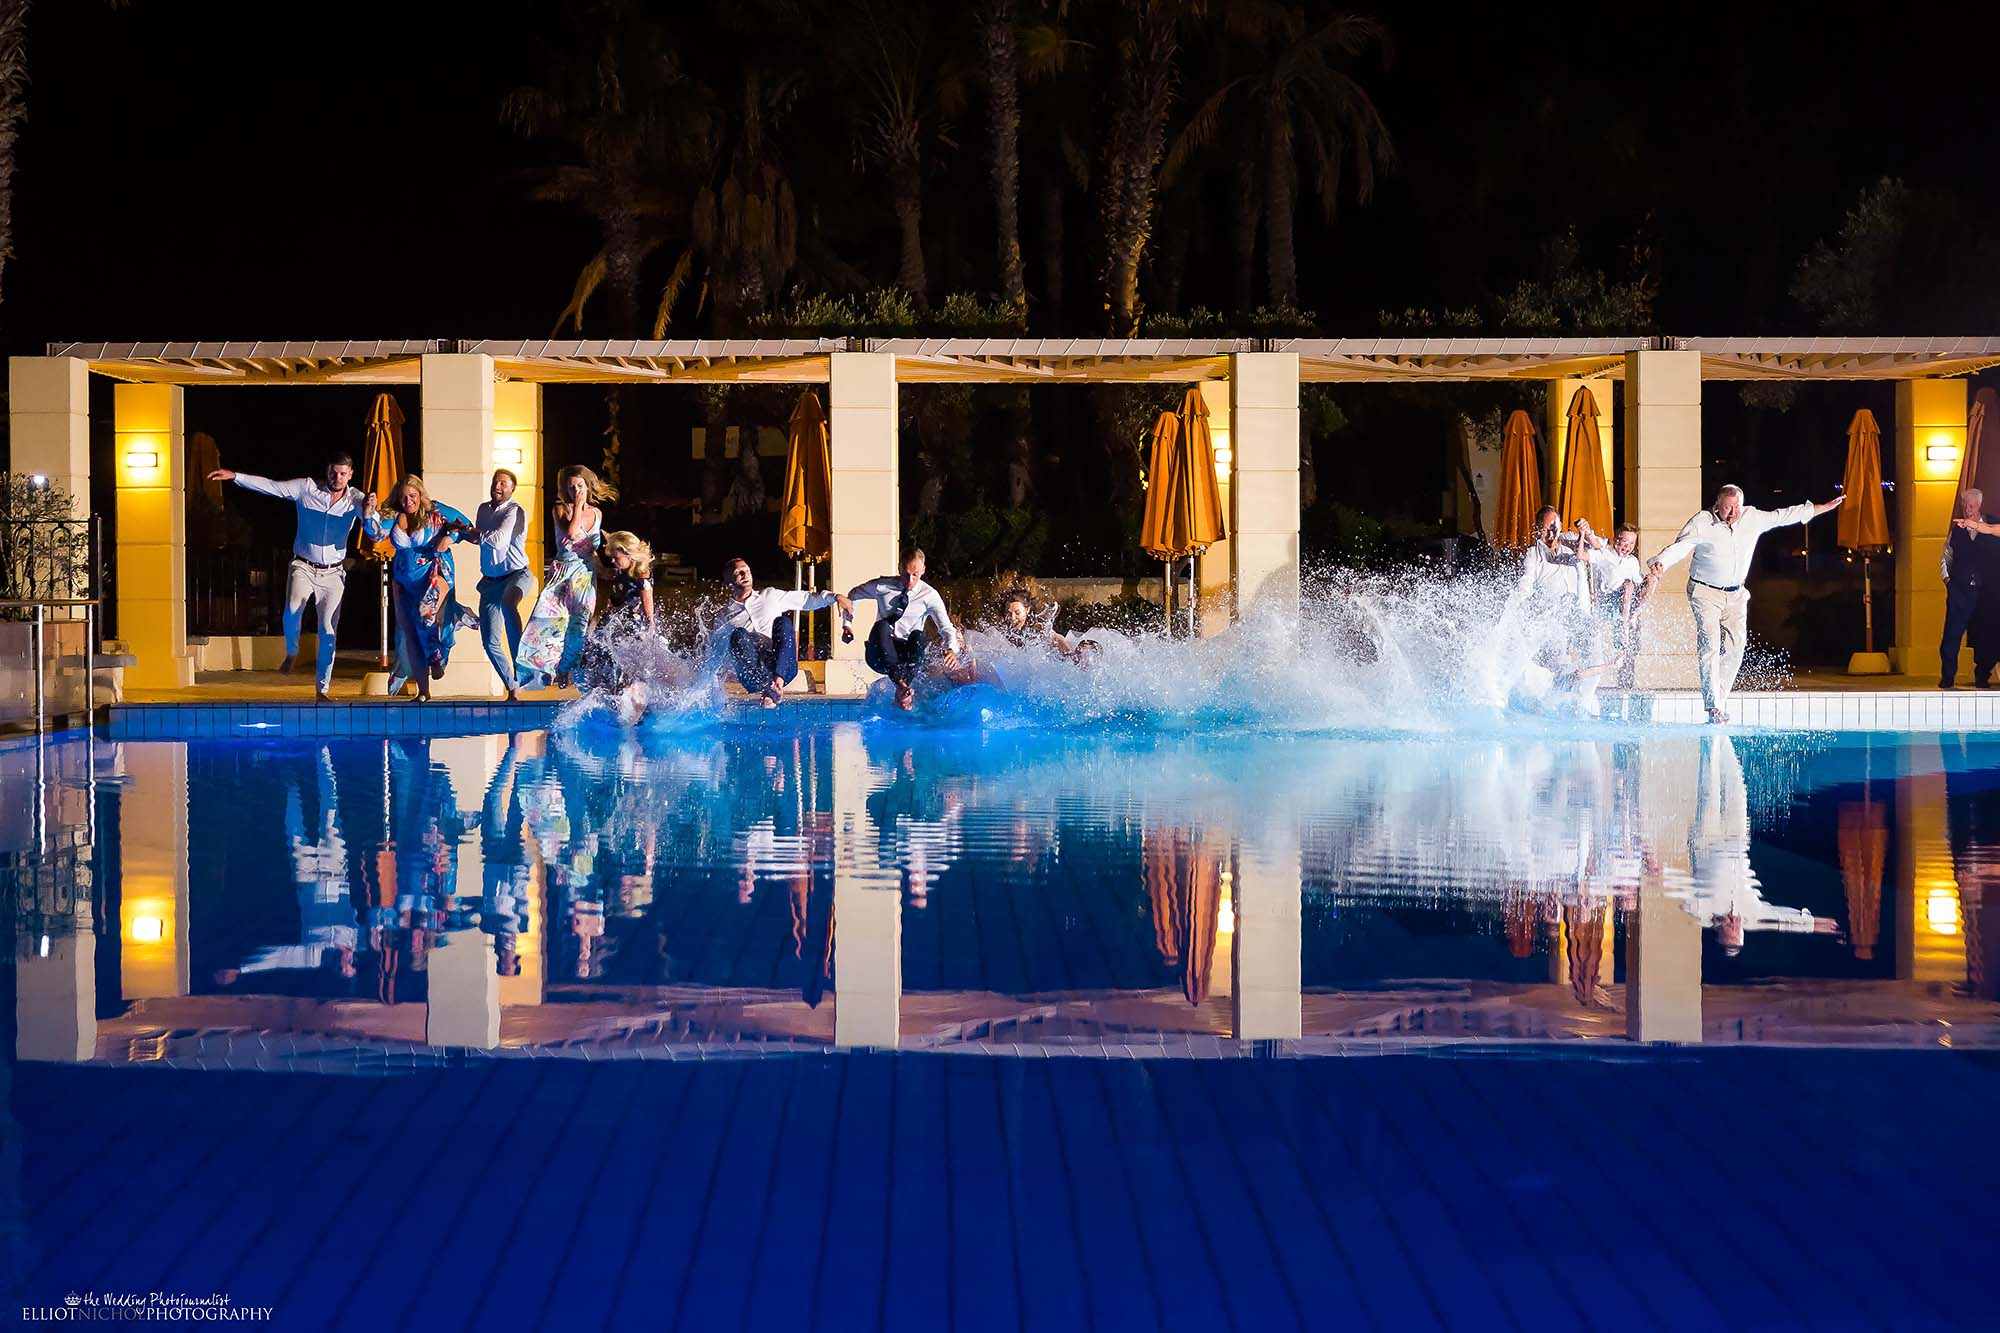 Bride and groom jump into a hotel swimming pool with their wedding guests. Wedding photography by Elliot Nichol.